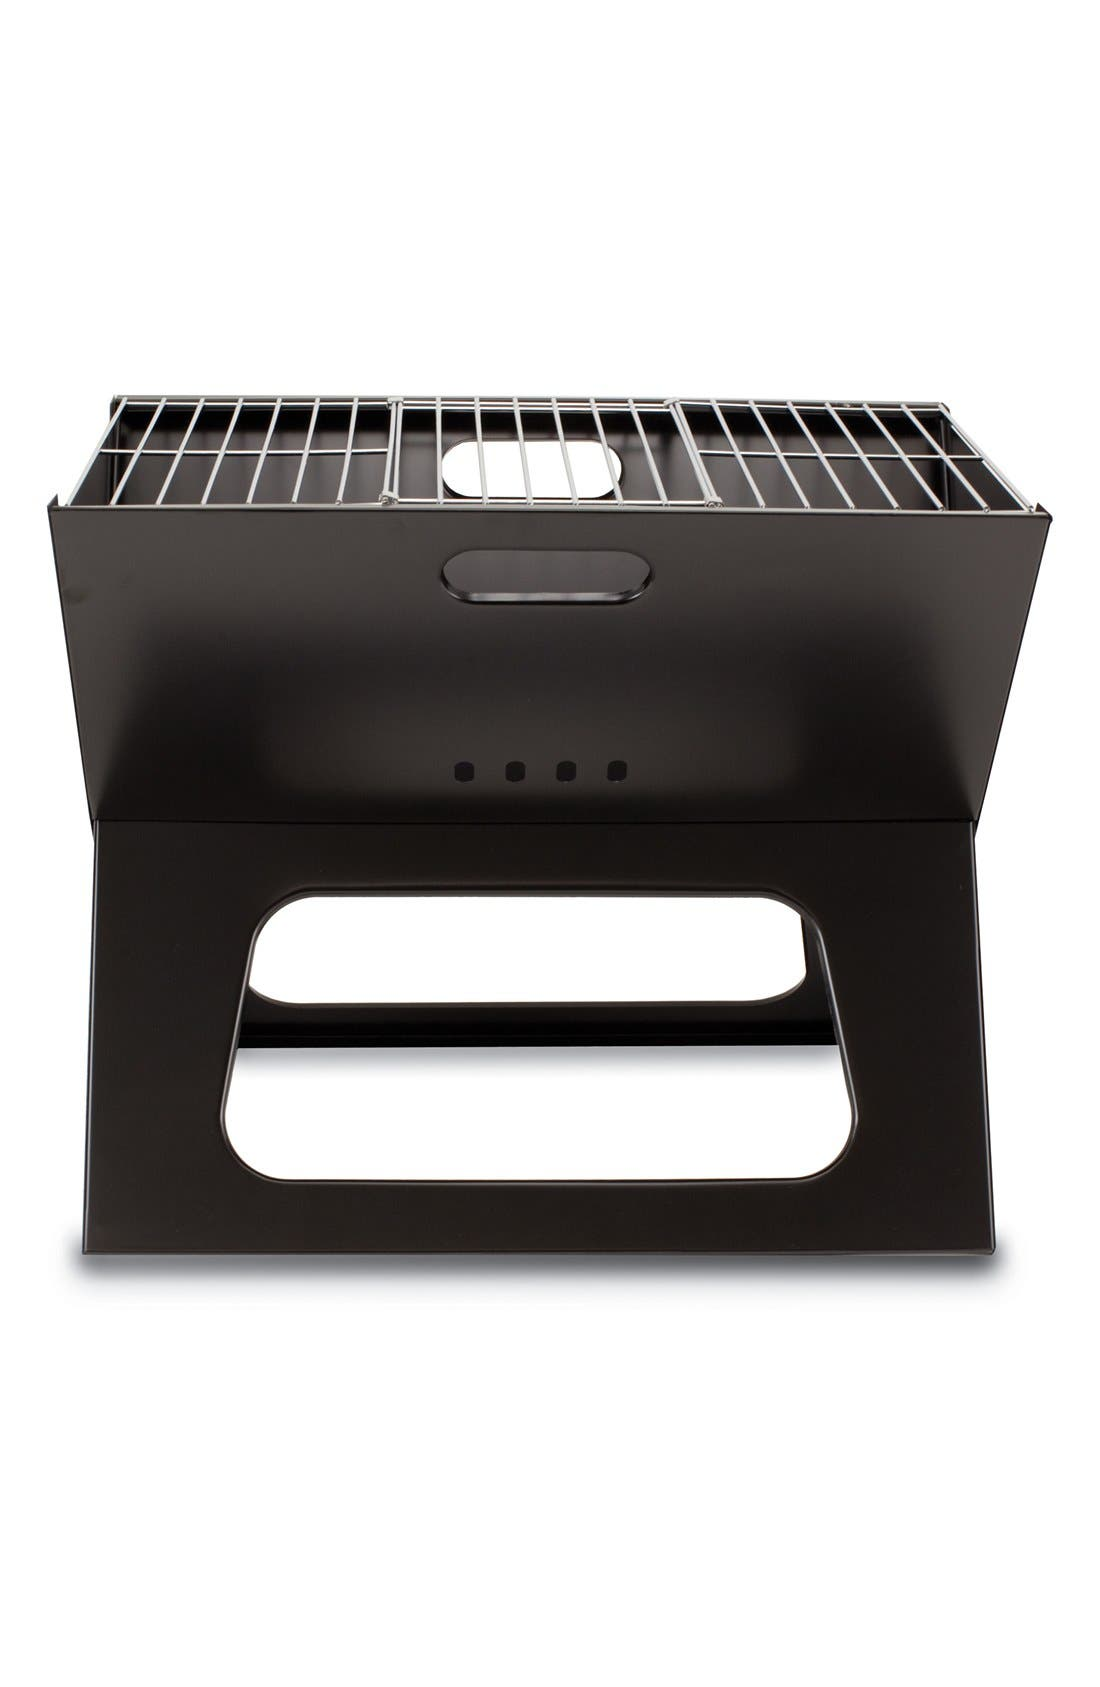 'X-Grill' Portable Fold-Up BBQ Grill,                             Alternate thumbnail 4, color,                             001